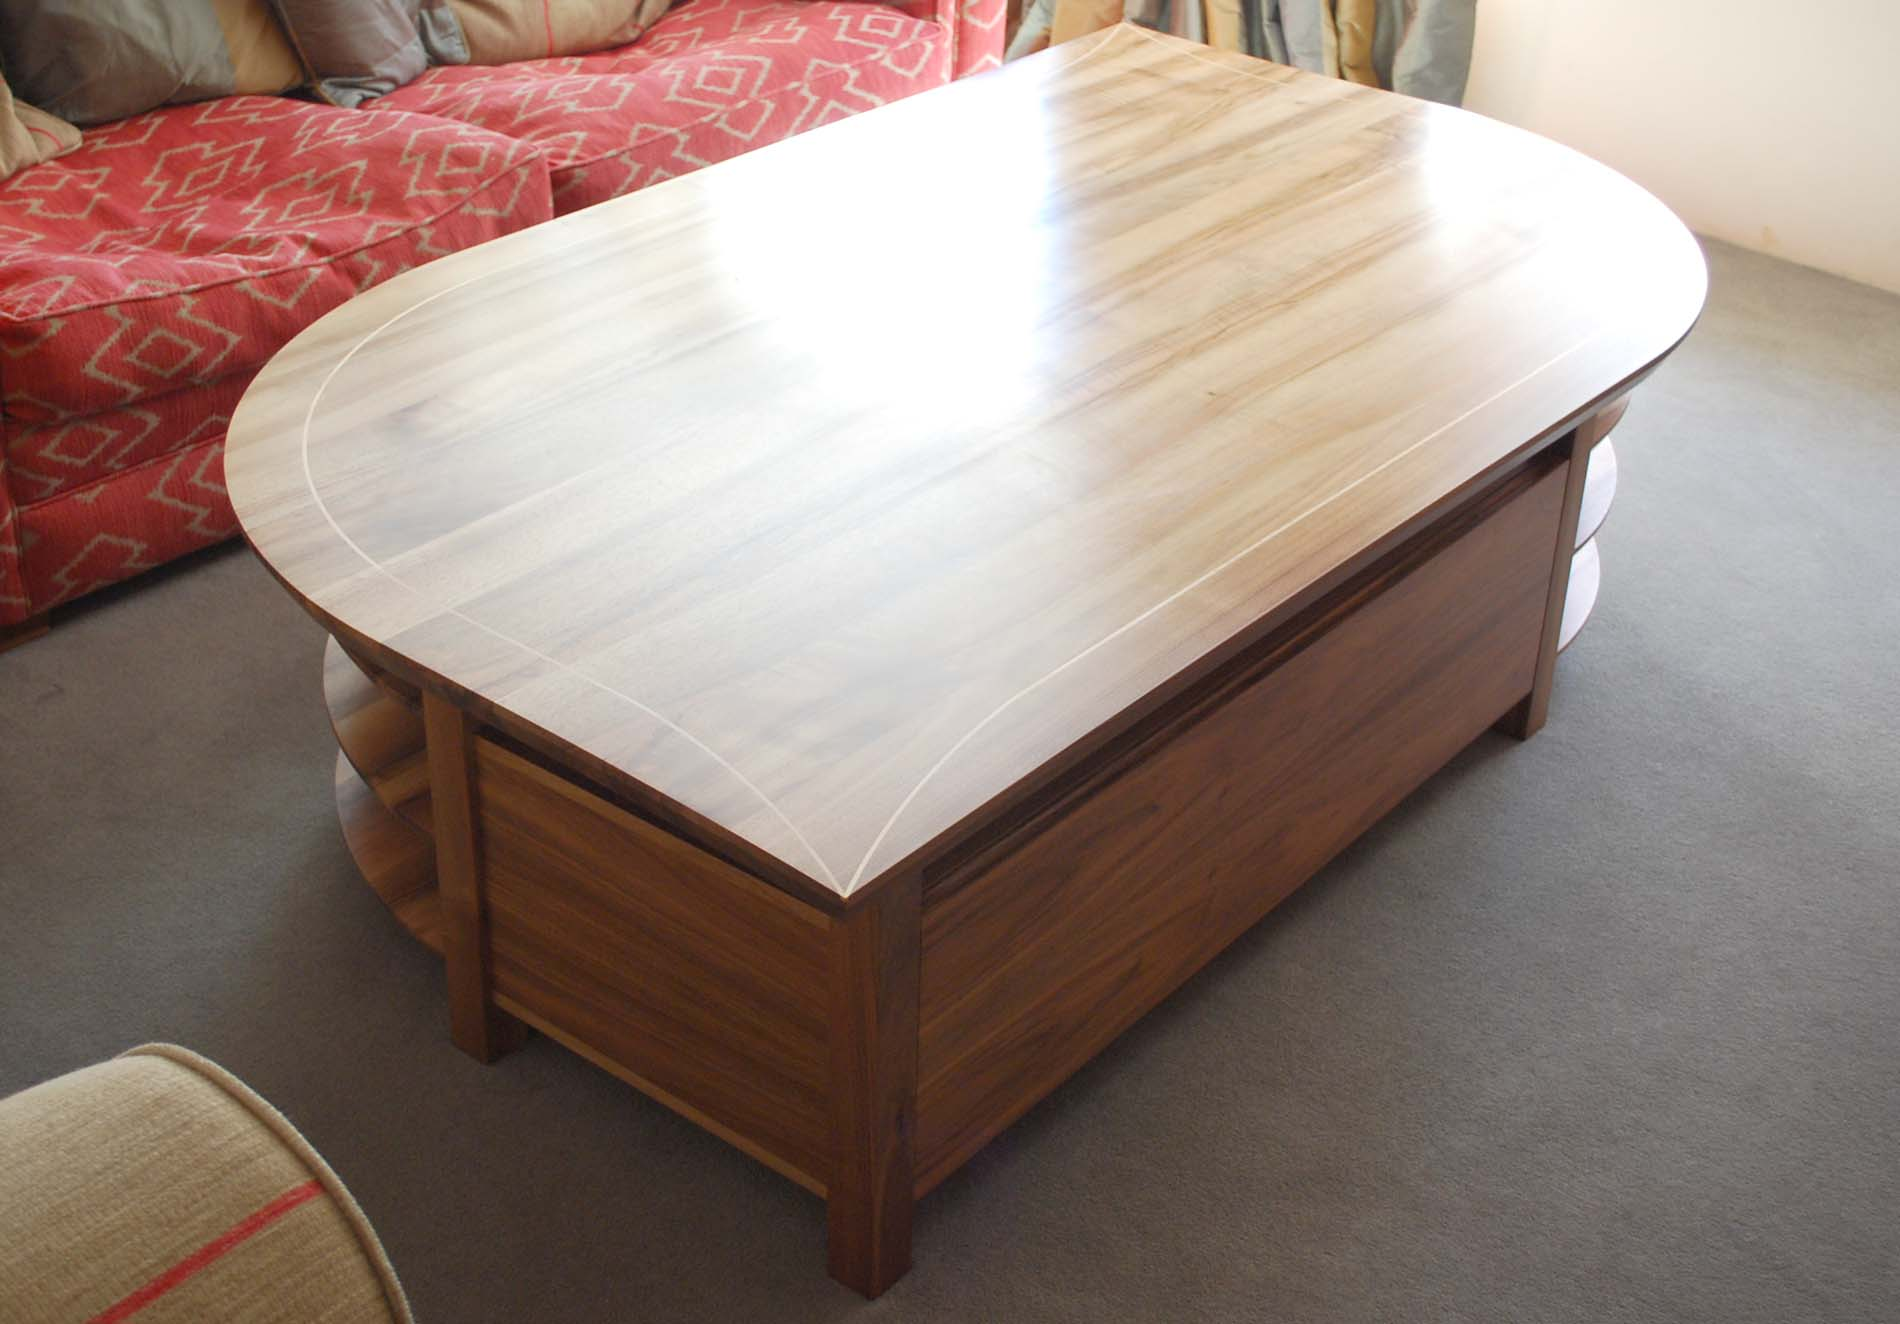 New piece Lake Farm Coffee Table Diary of a Fine Furniture Maker